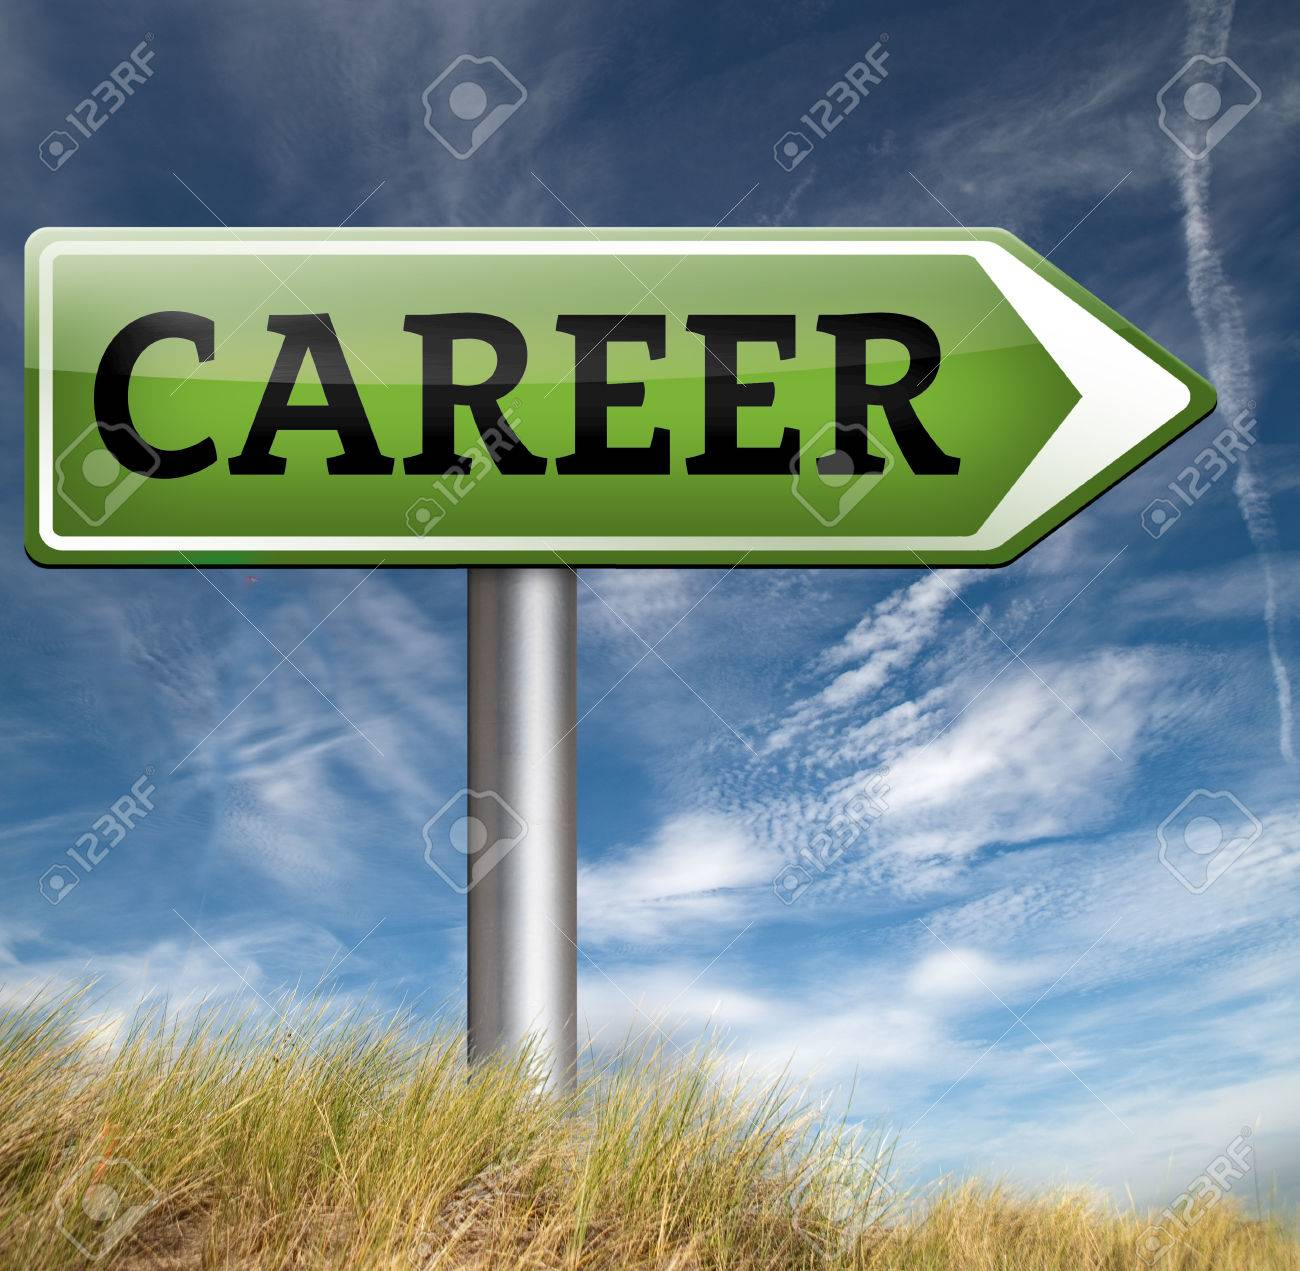 career move and ambition for personal development a nice job stock photo career move and ambition for personal development a nice job promotion or the search for a new job build a career or job